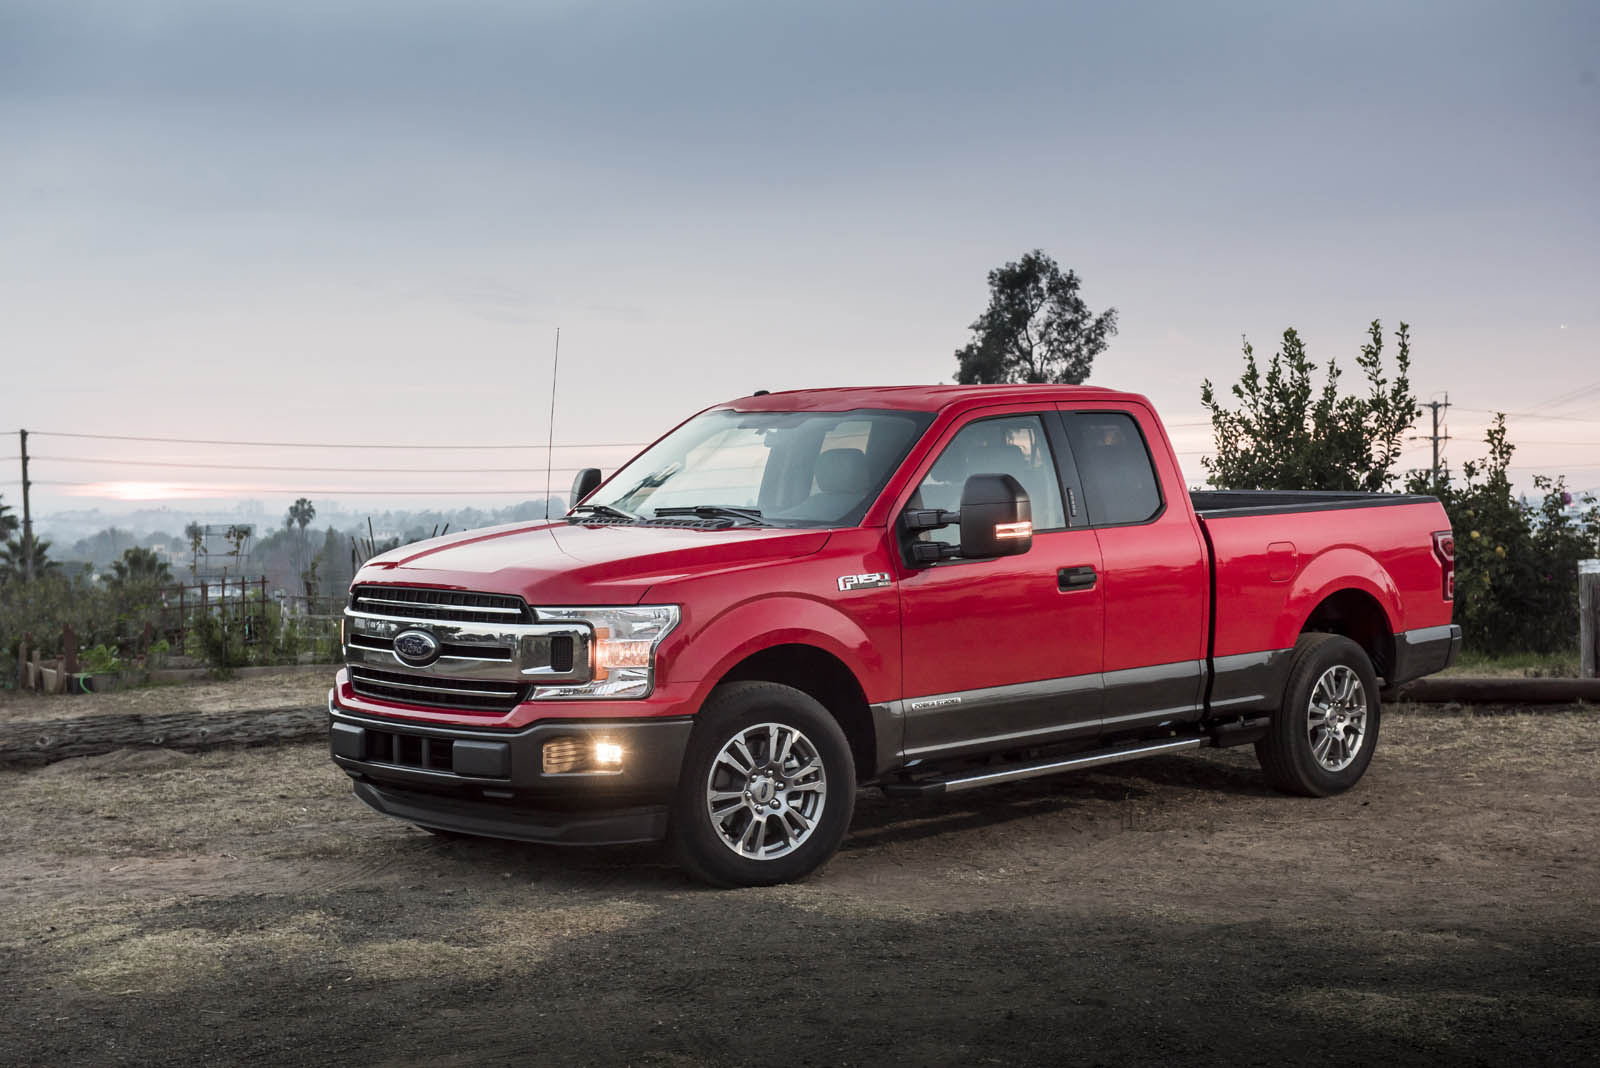 2018 Ford F-150 Power Stroke V6 Diesel Boasts Best-In-Class Fuel Economy - autoevolution